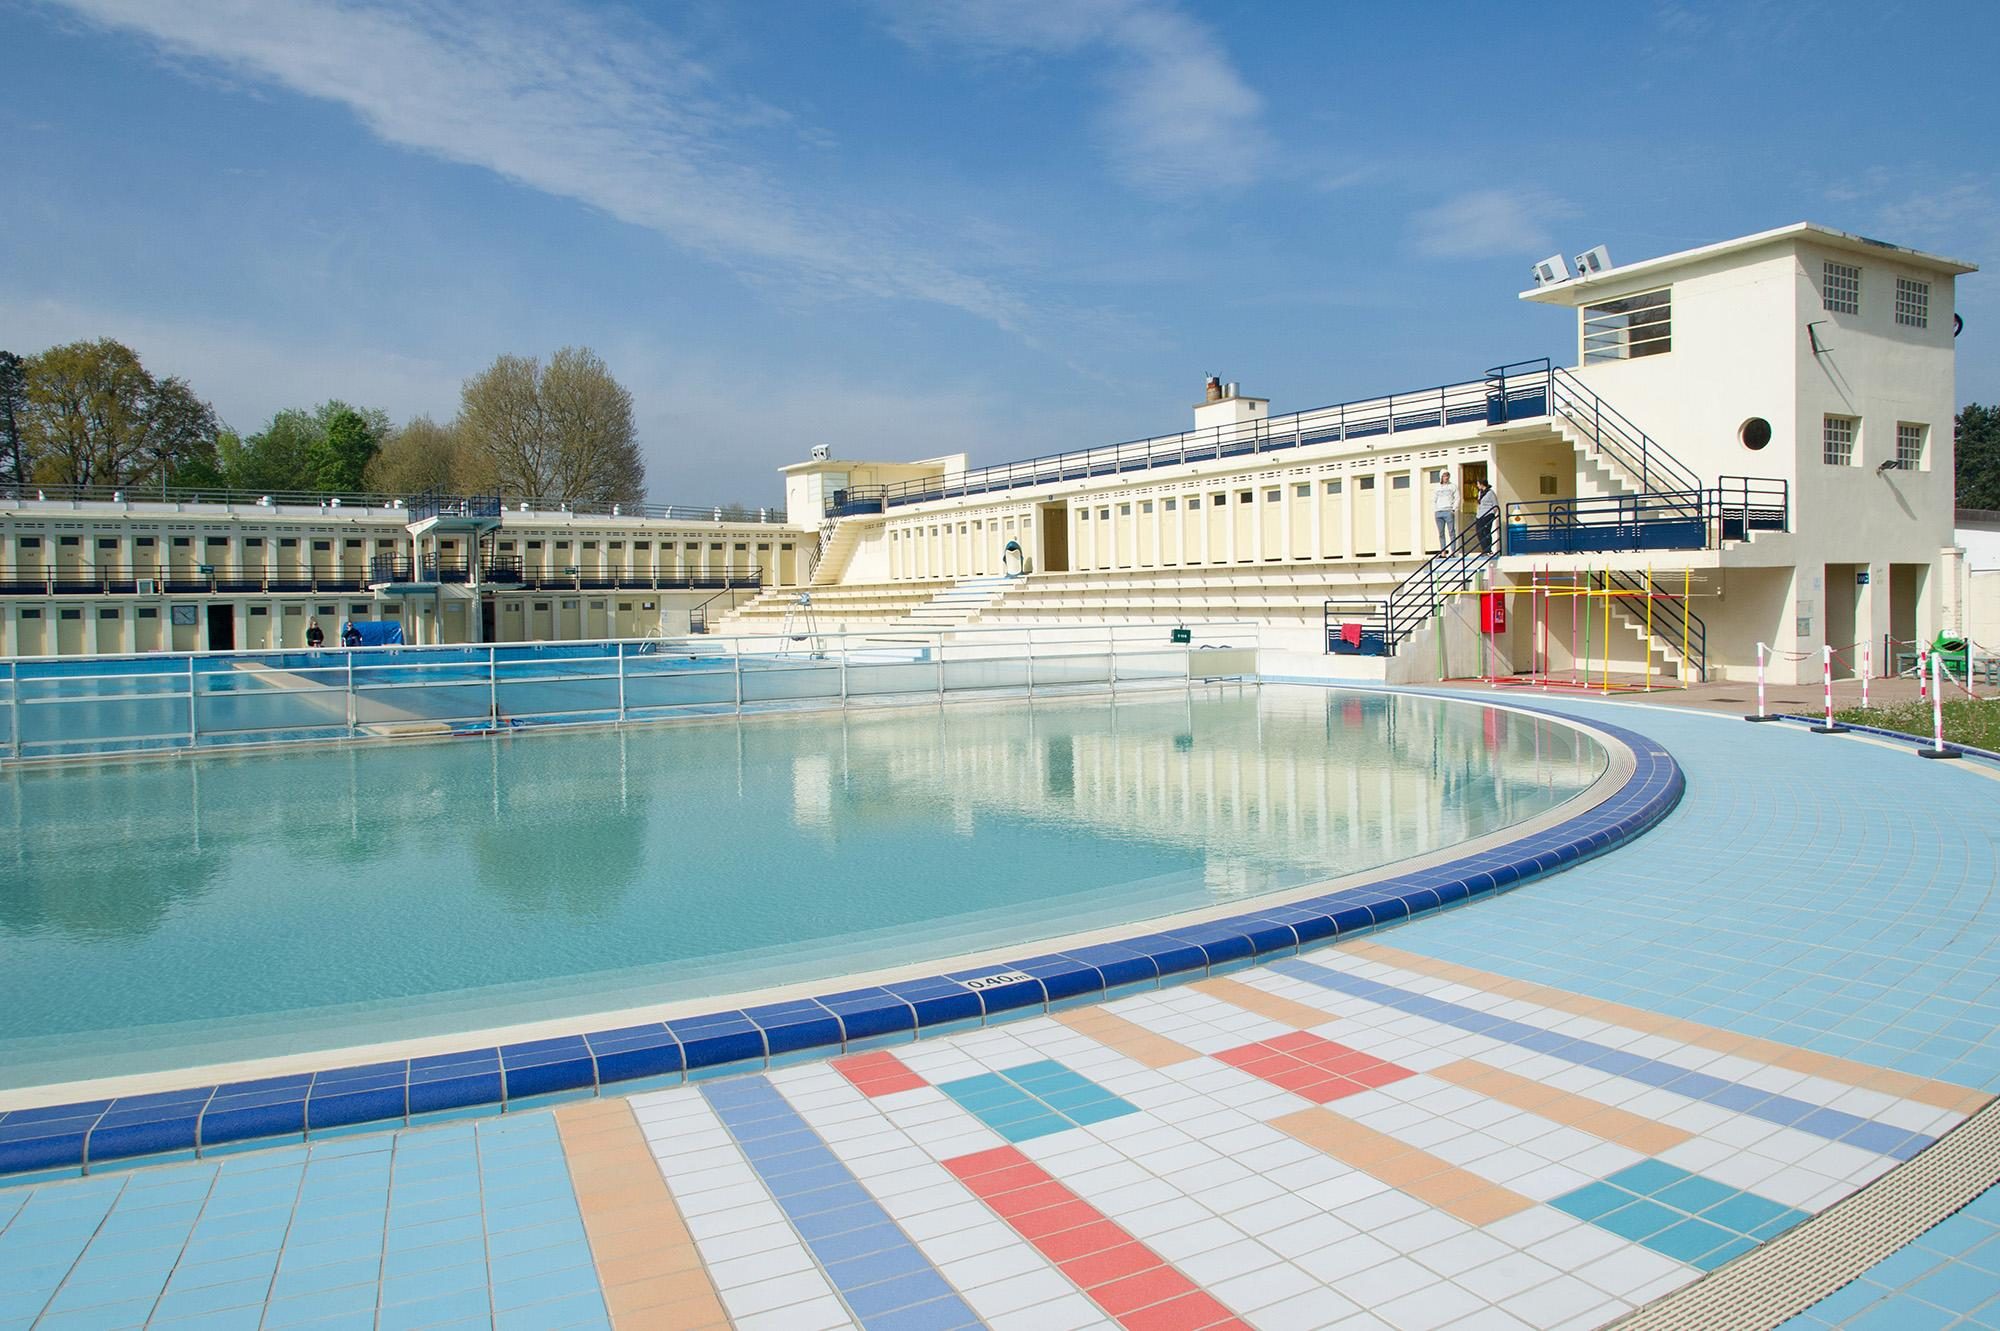 Bruay la Buissiere Swimming pool; immerse yourself in the 1930s!